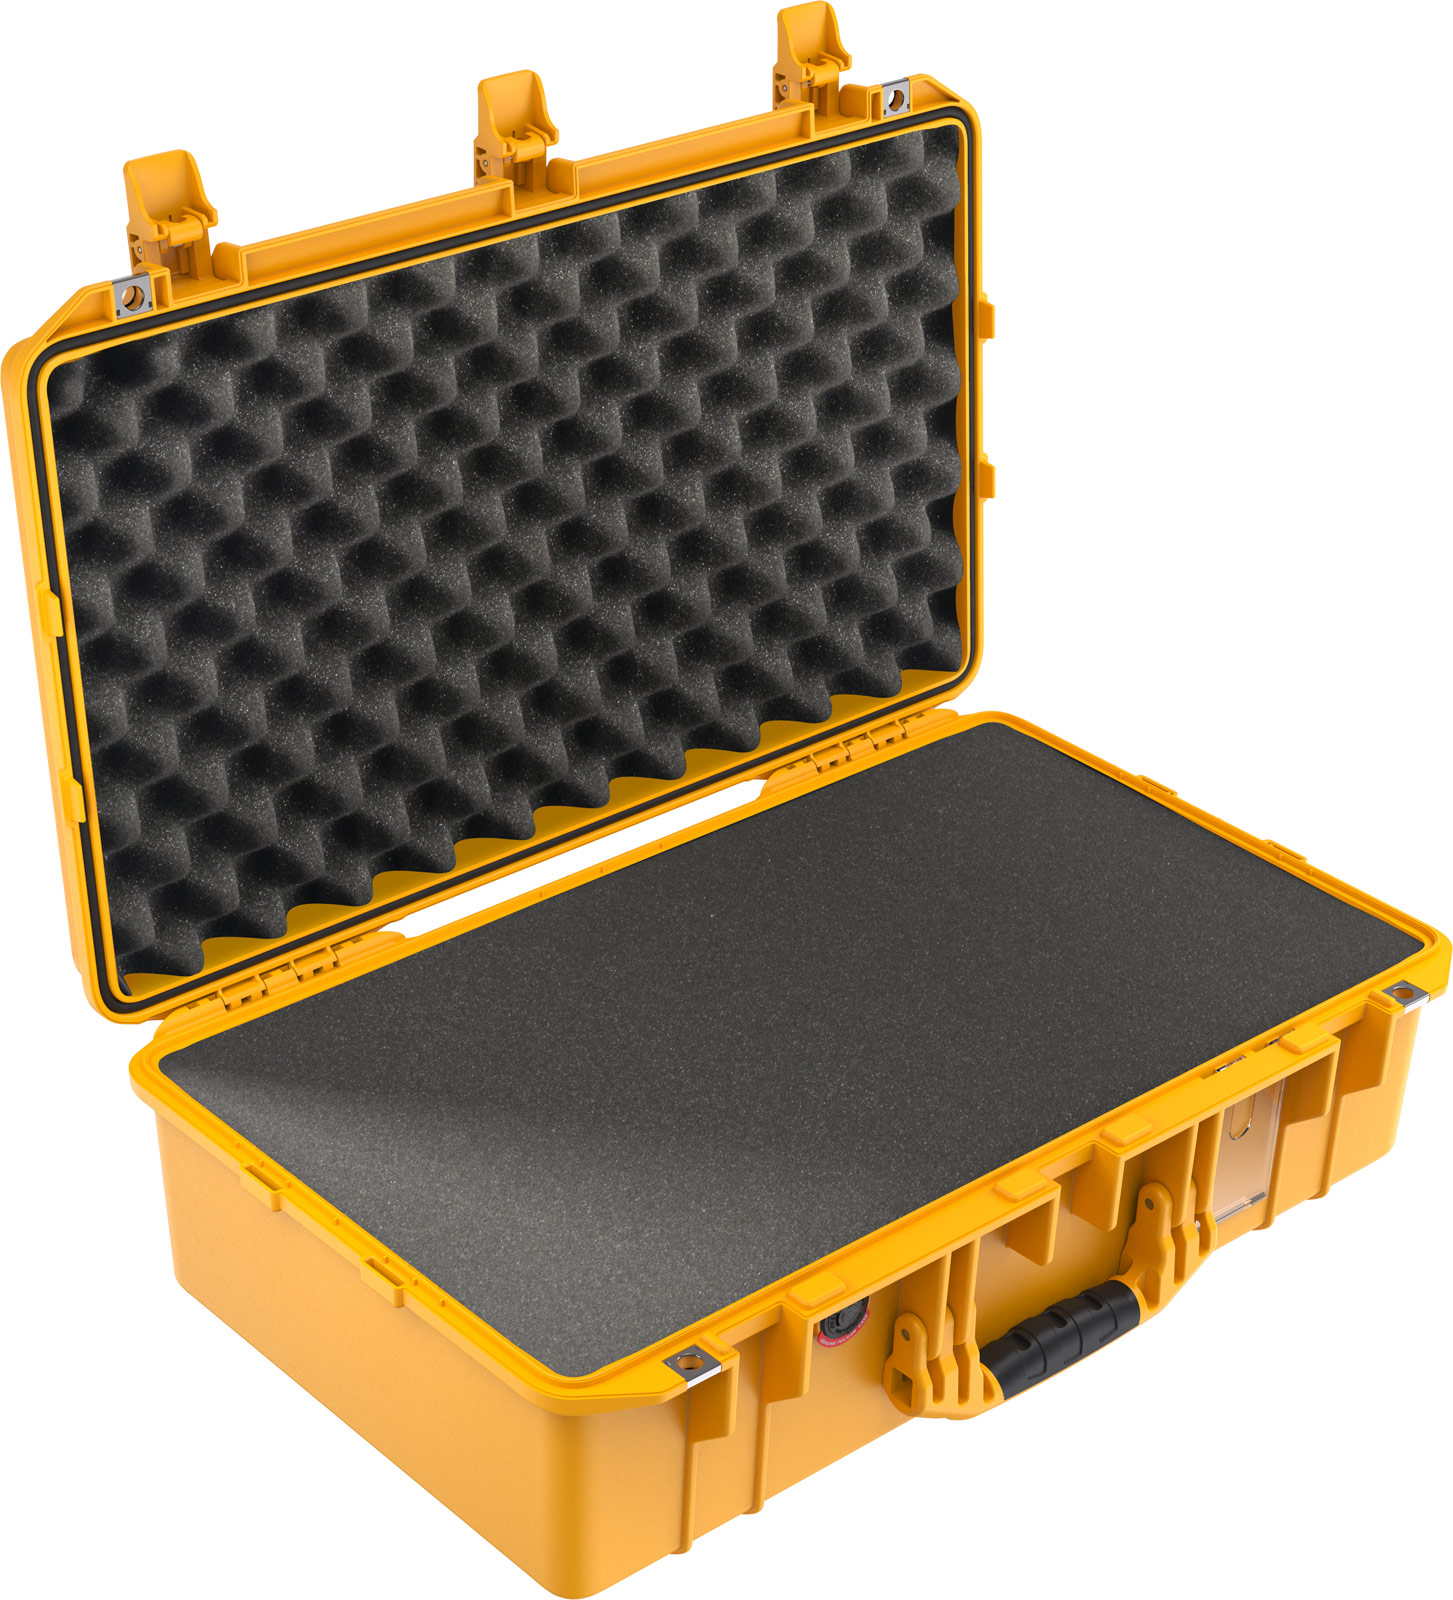 buy pelican air 1555 shop yellow air lightweight case